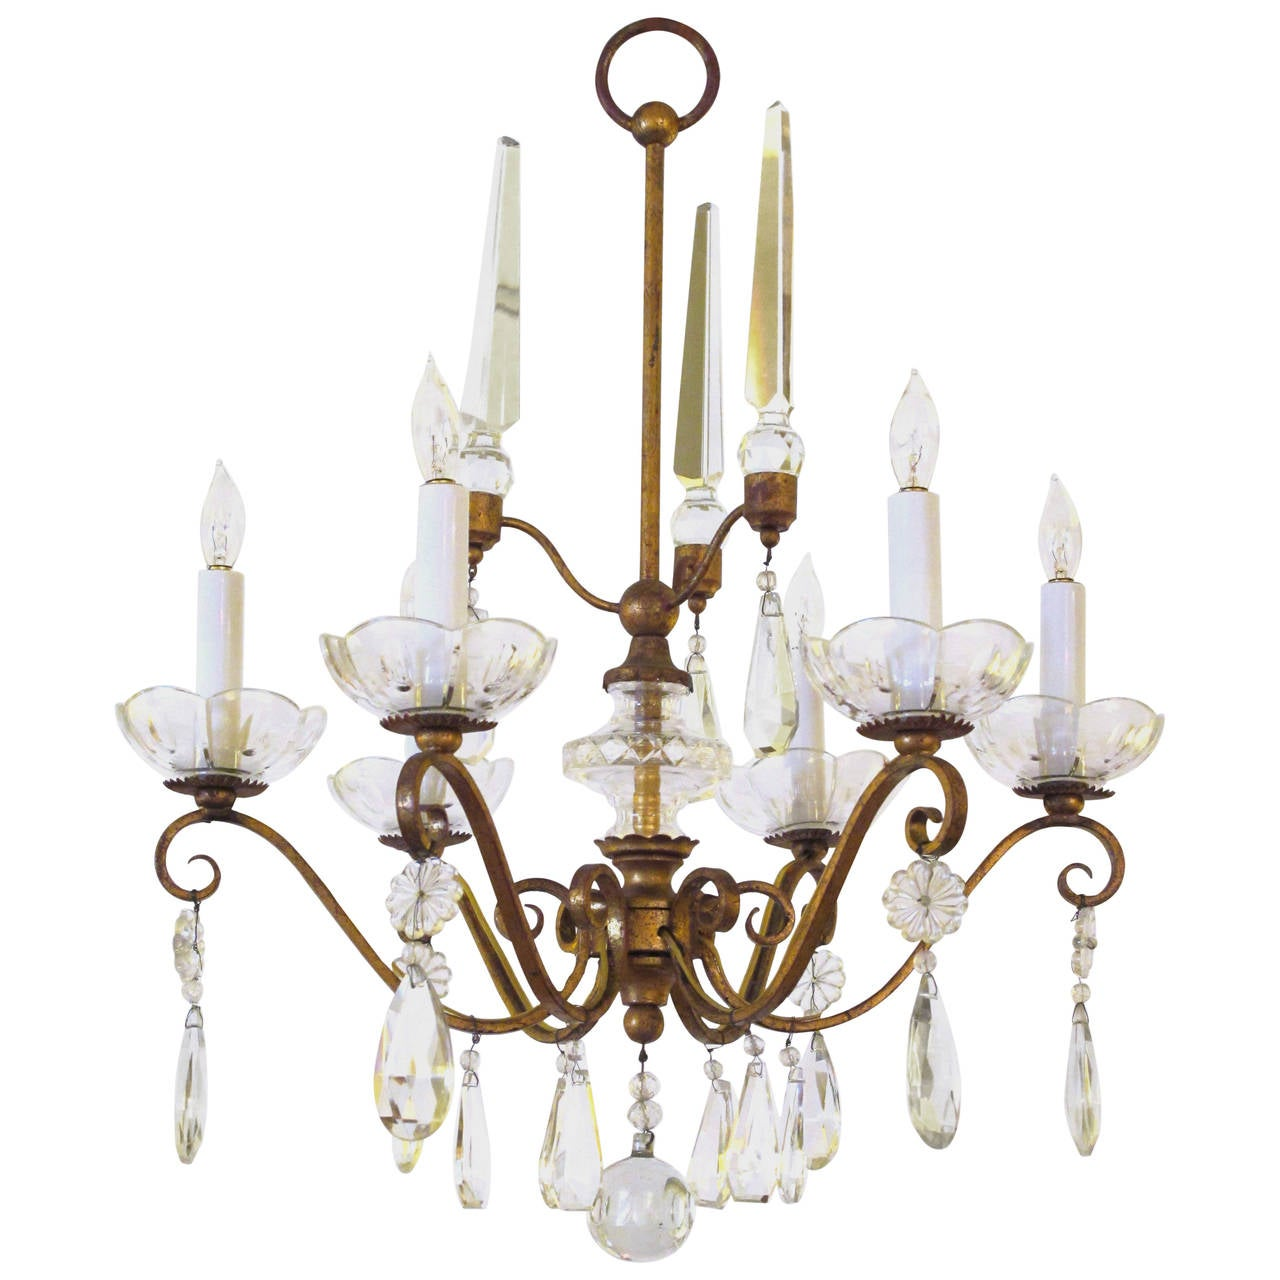 Vintage 1940s italian green and gilt chandelier with colorful elegant french 1940s gilt metal six light chandelier with crystal pendants aloadofball Image collections